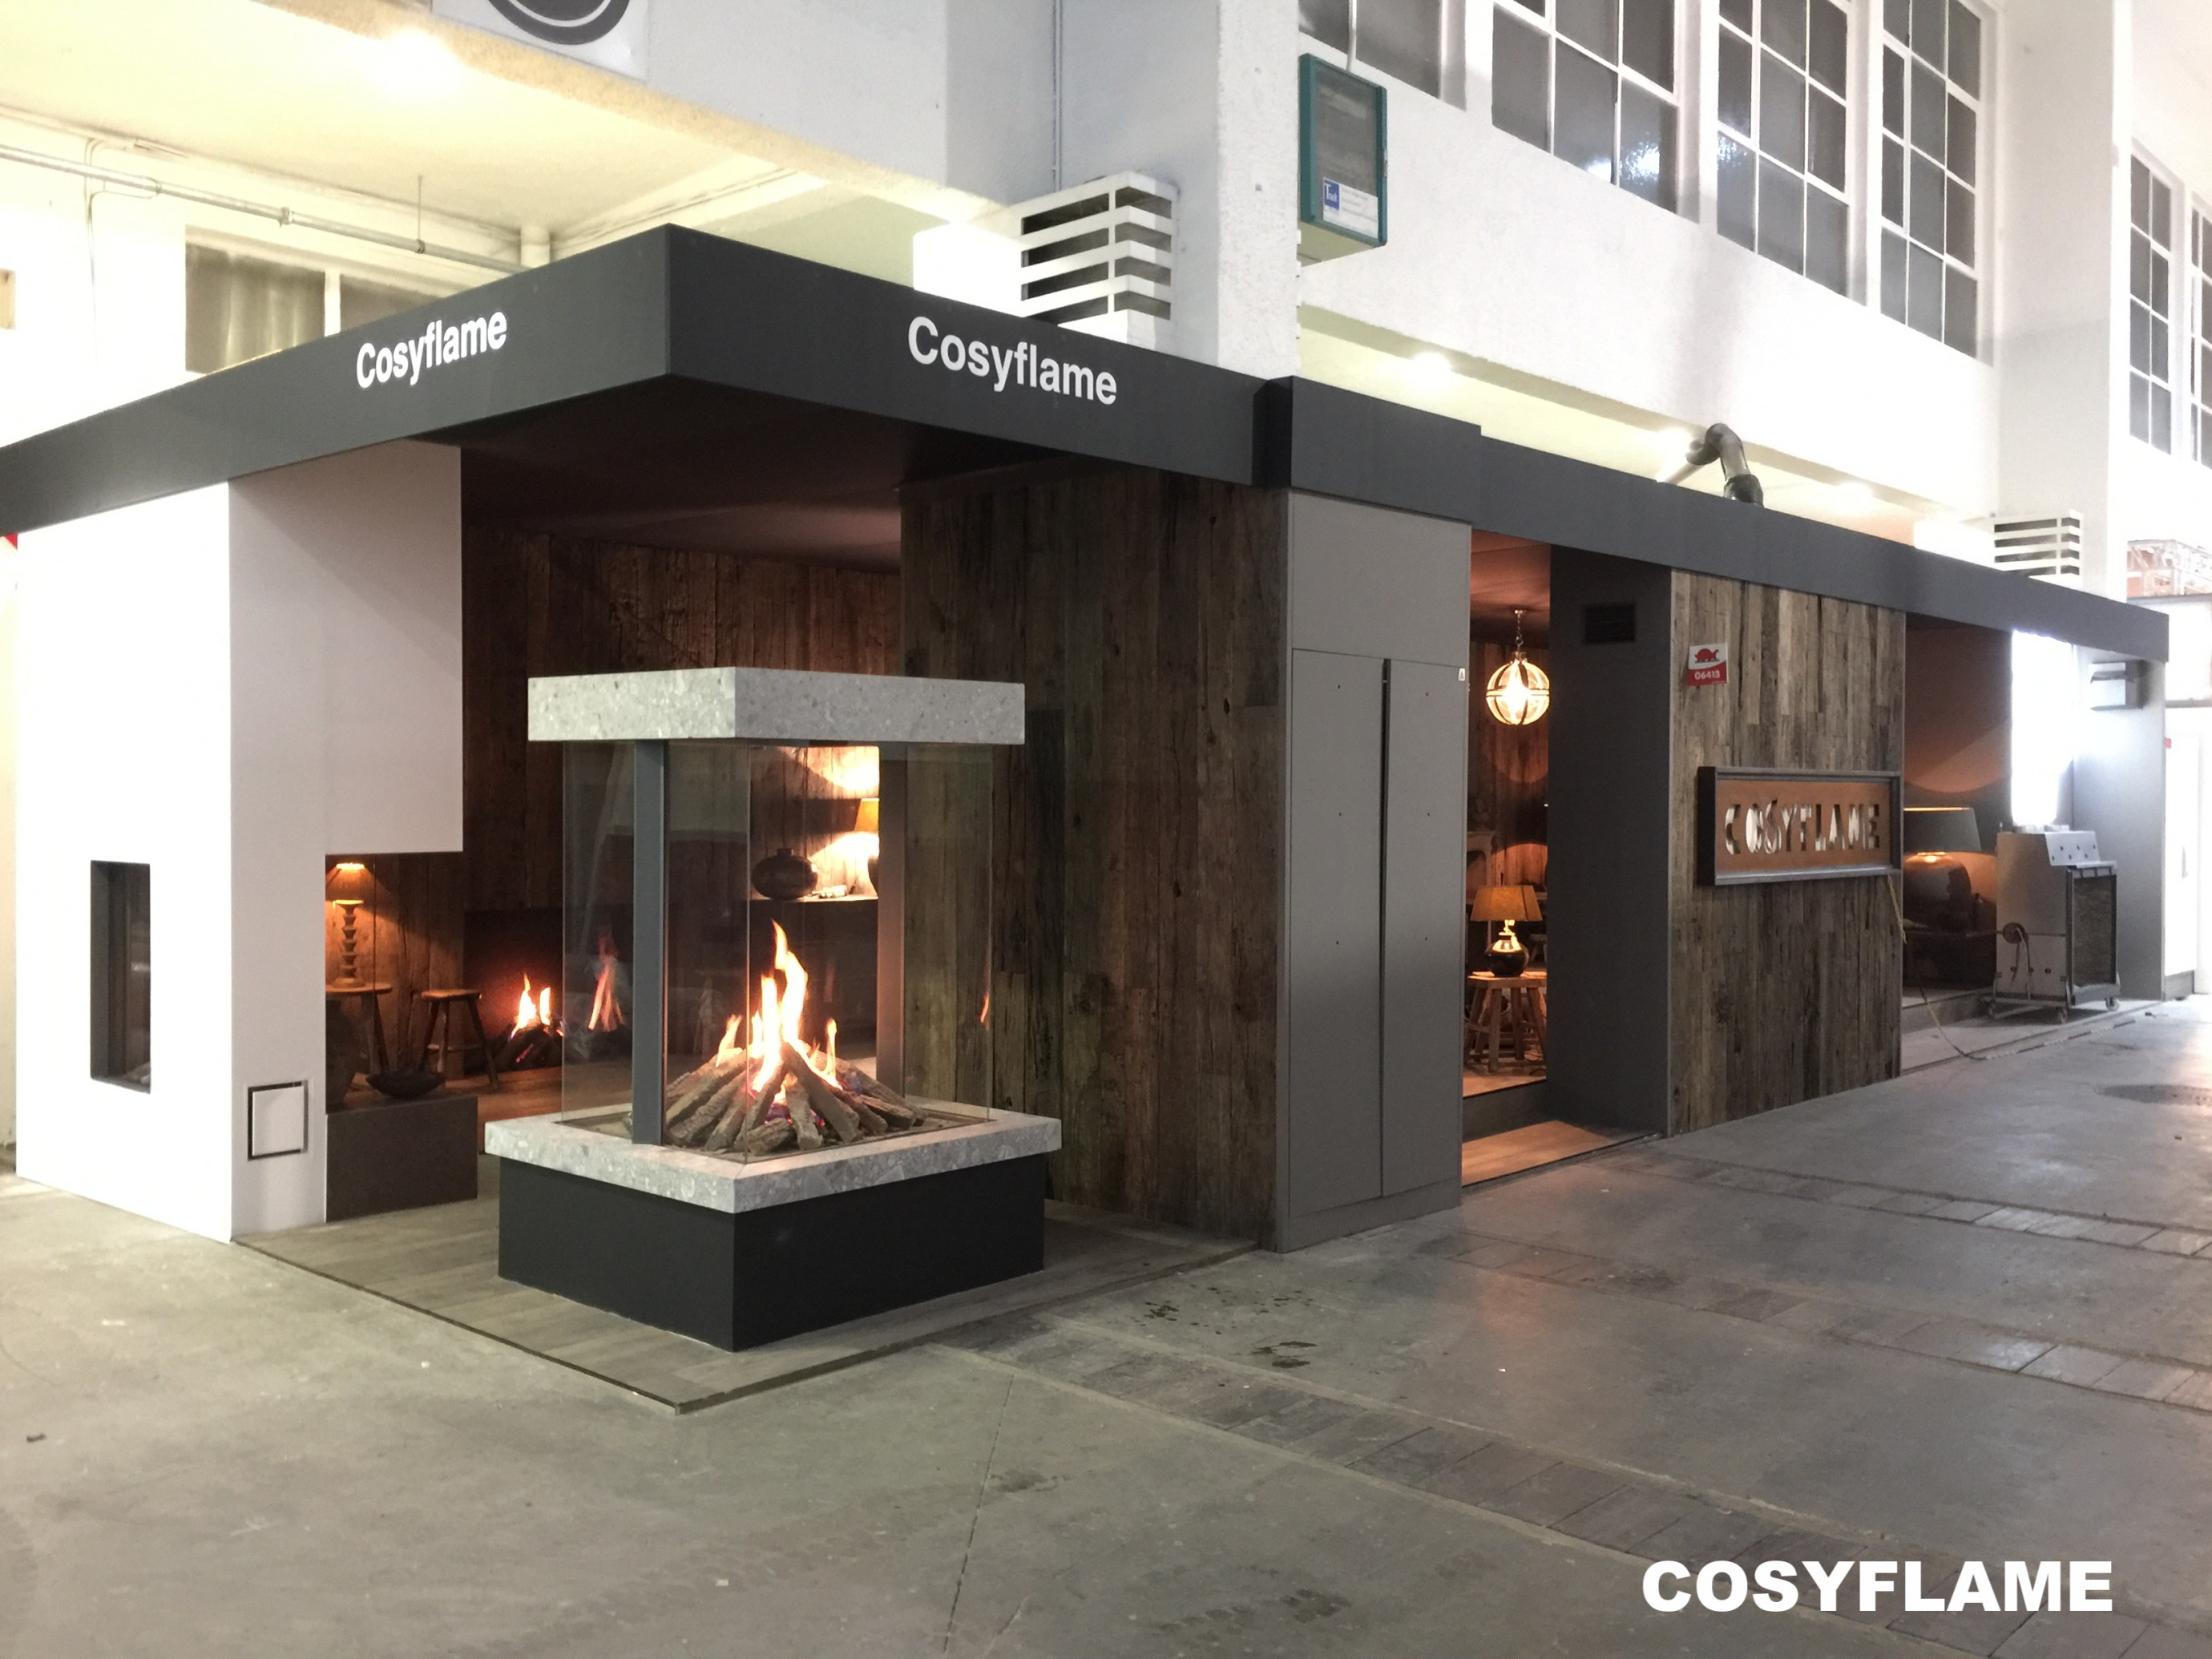 Cosyflame-Beurzen-file2-12.jpeg